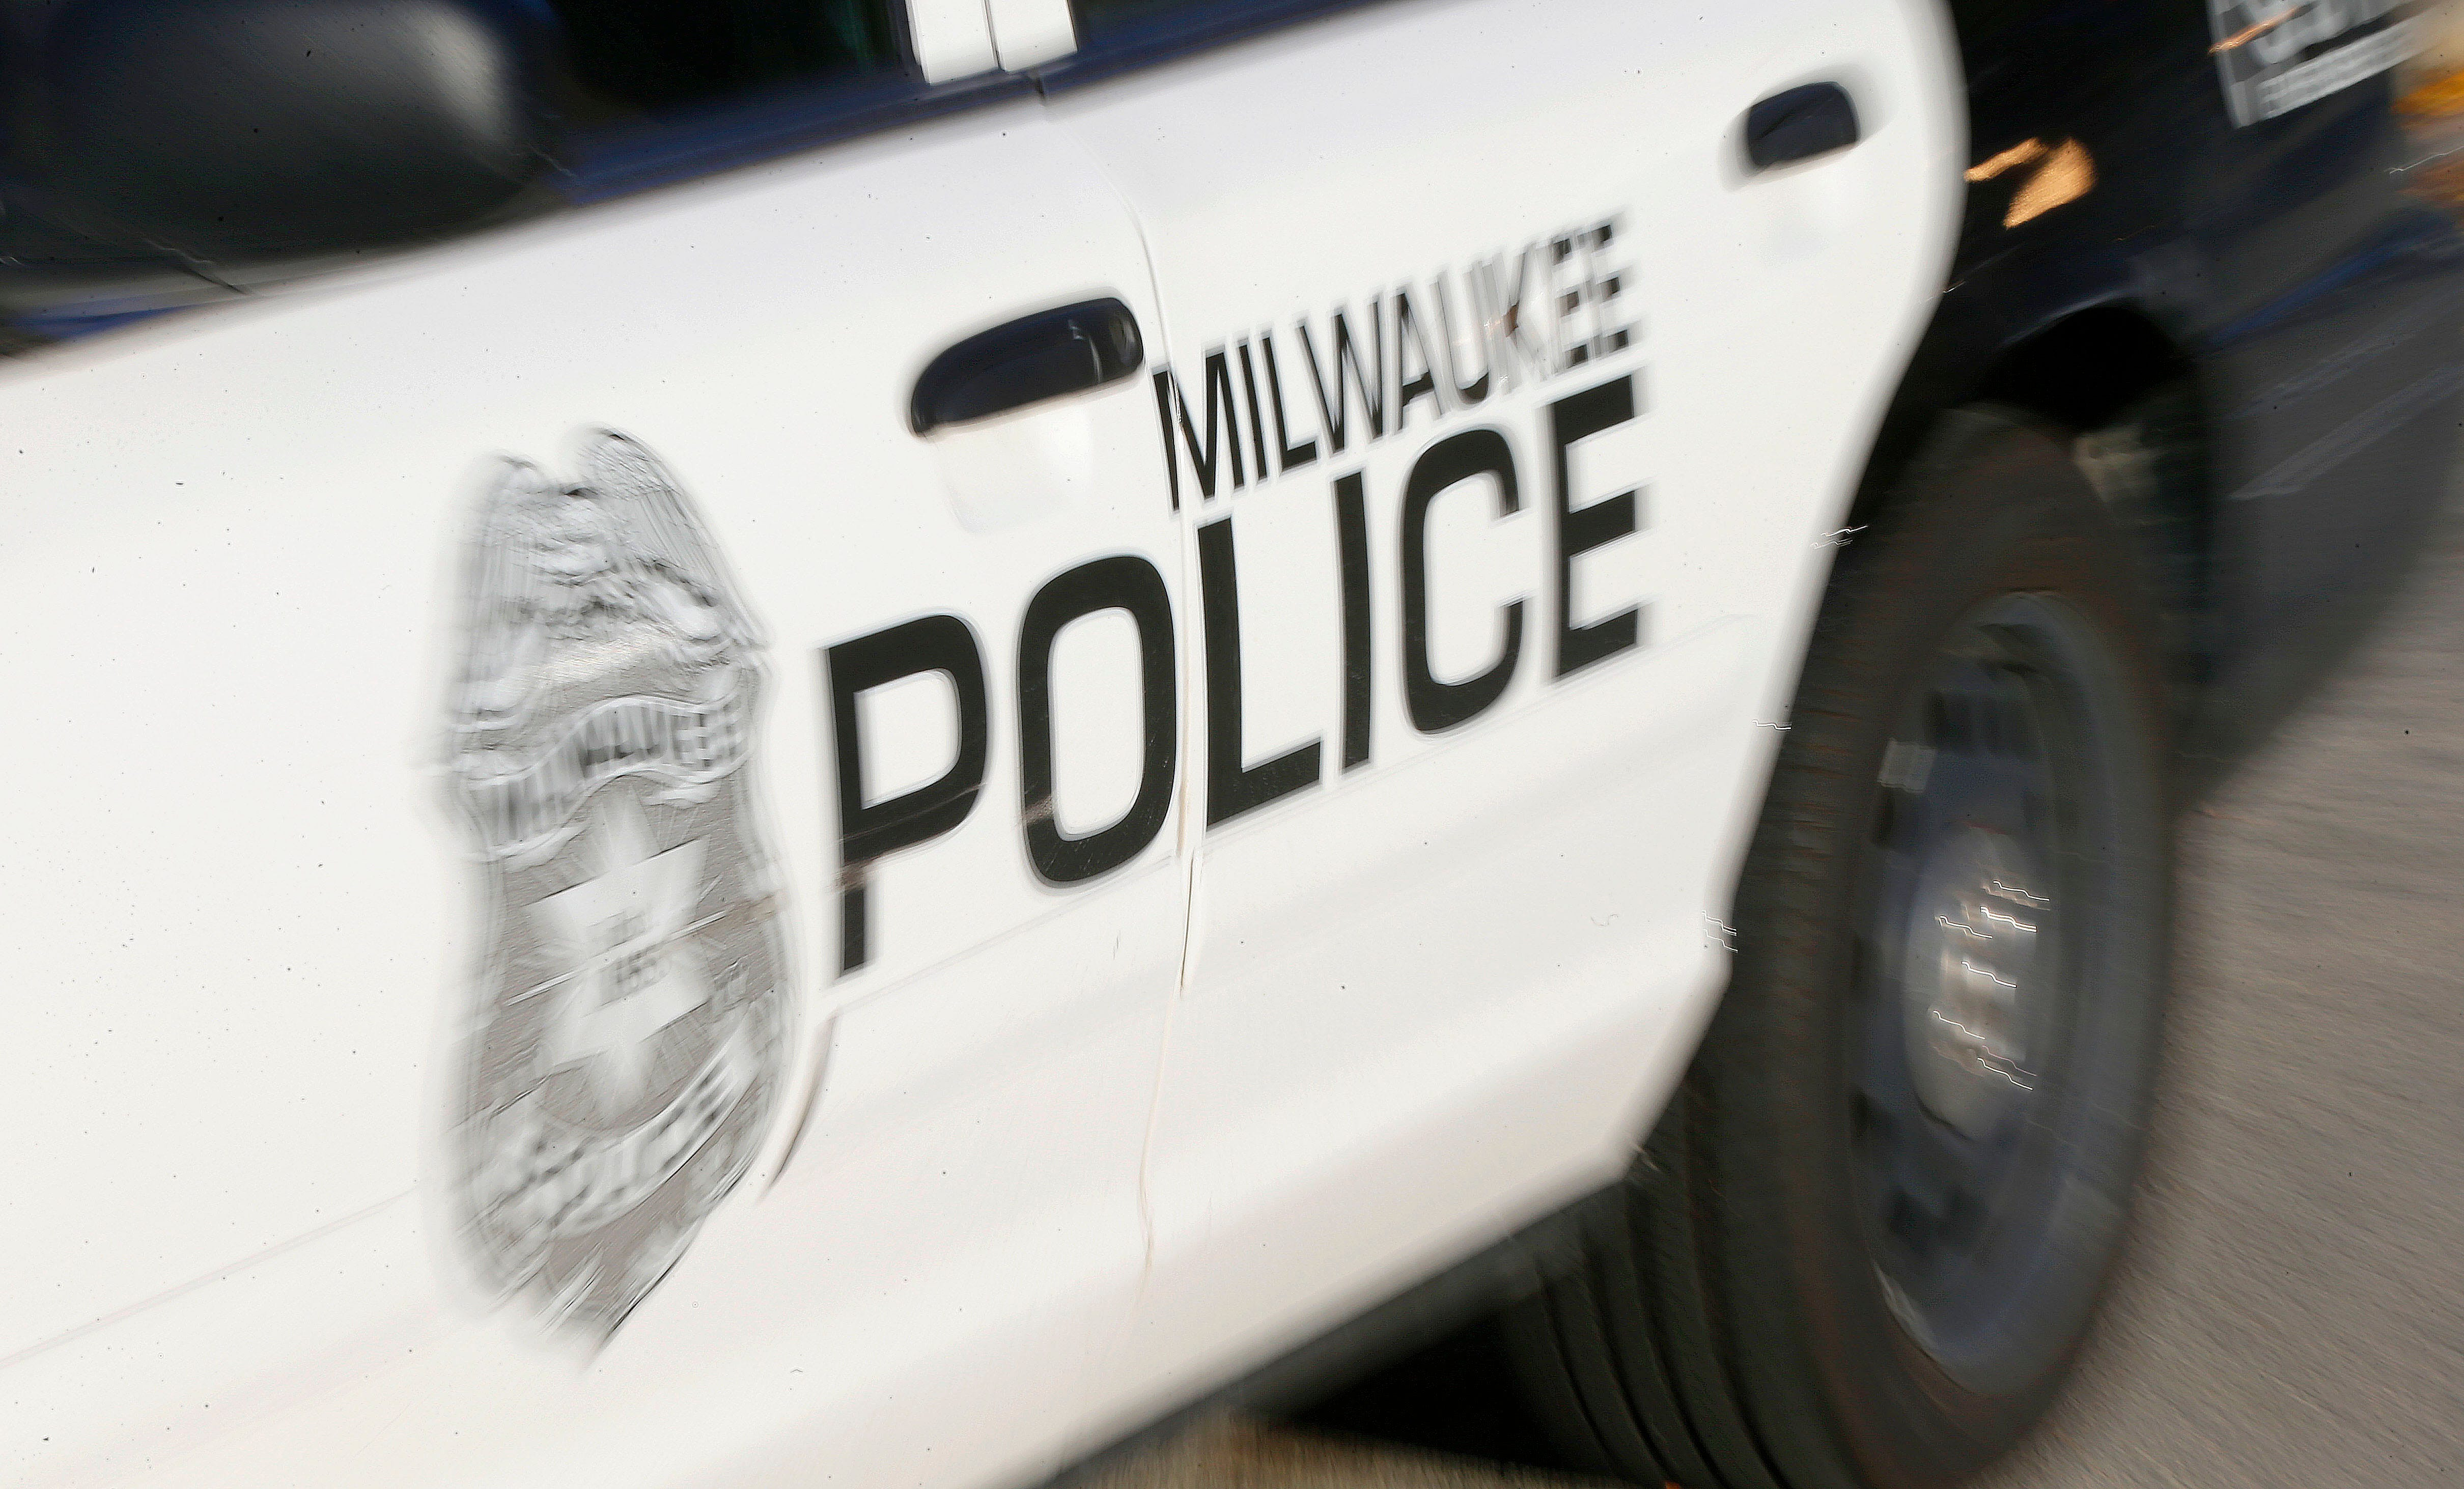 Man fleeing from police while carrying infant after crash arrested | Milwaukee Journal Sentinel